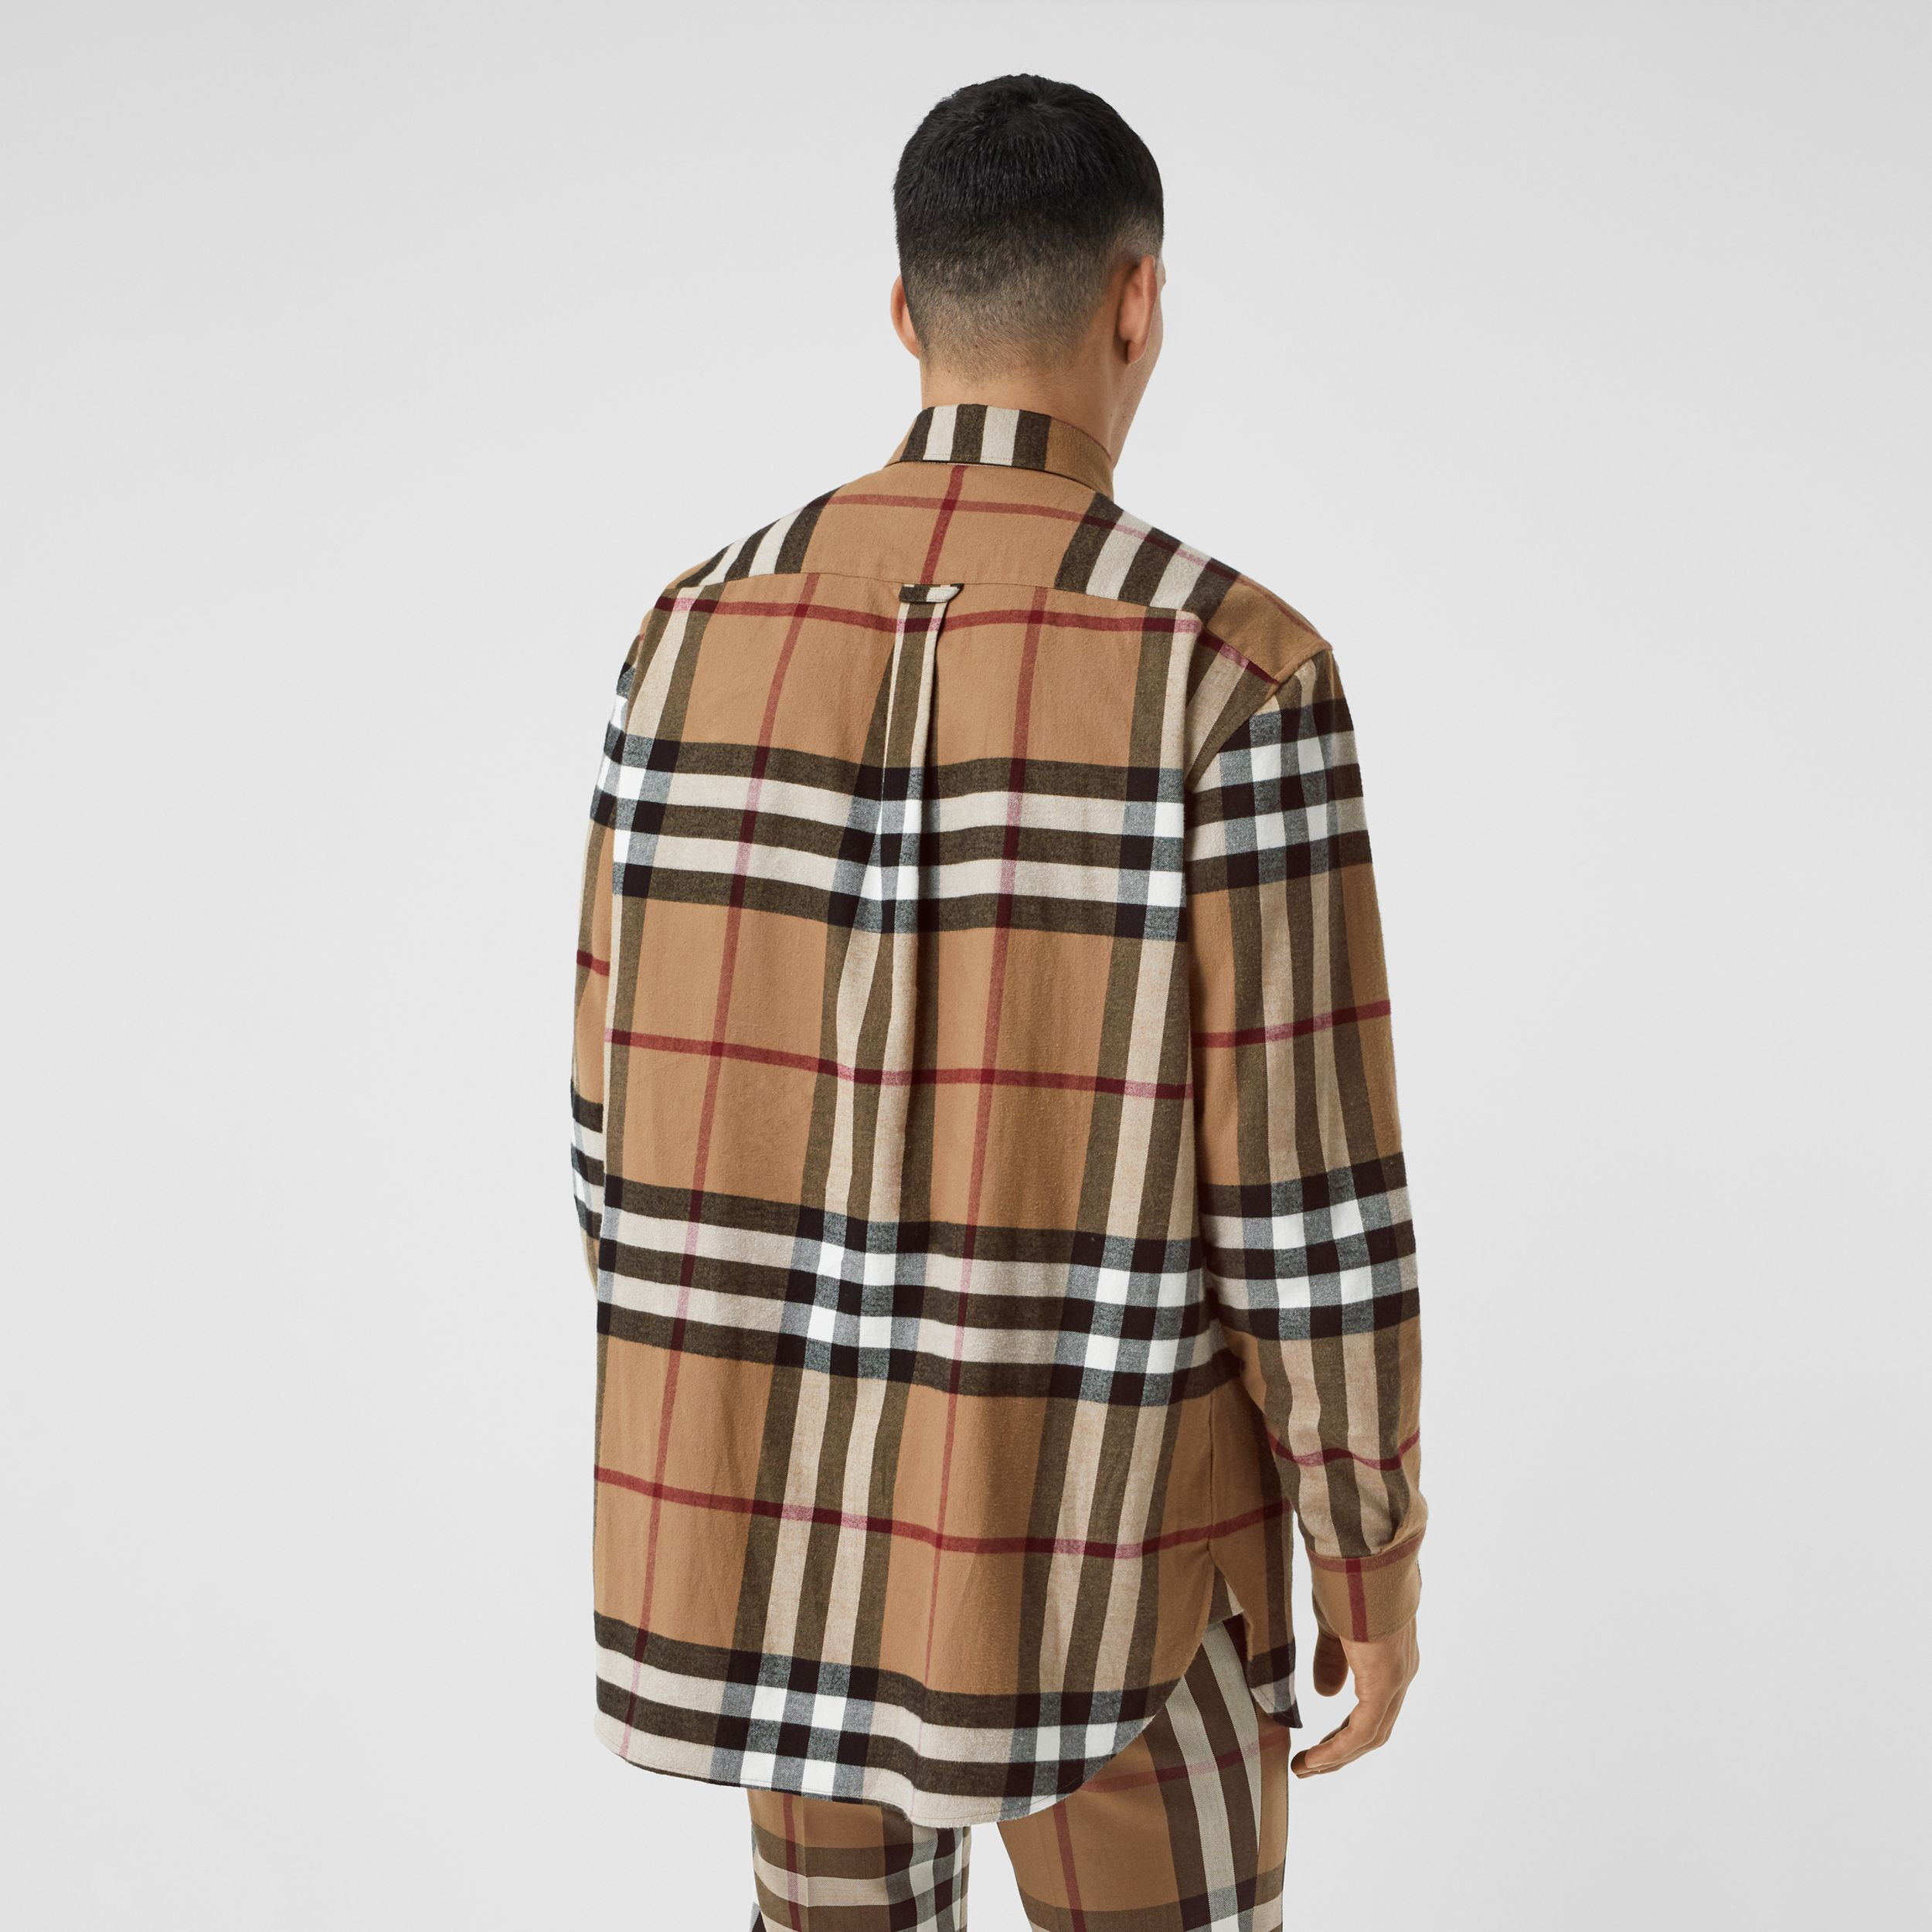 Relaxed Fit House Check Cotton Flannel Shirt in Birch Brown - Men | Burberry - 3